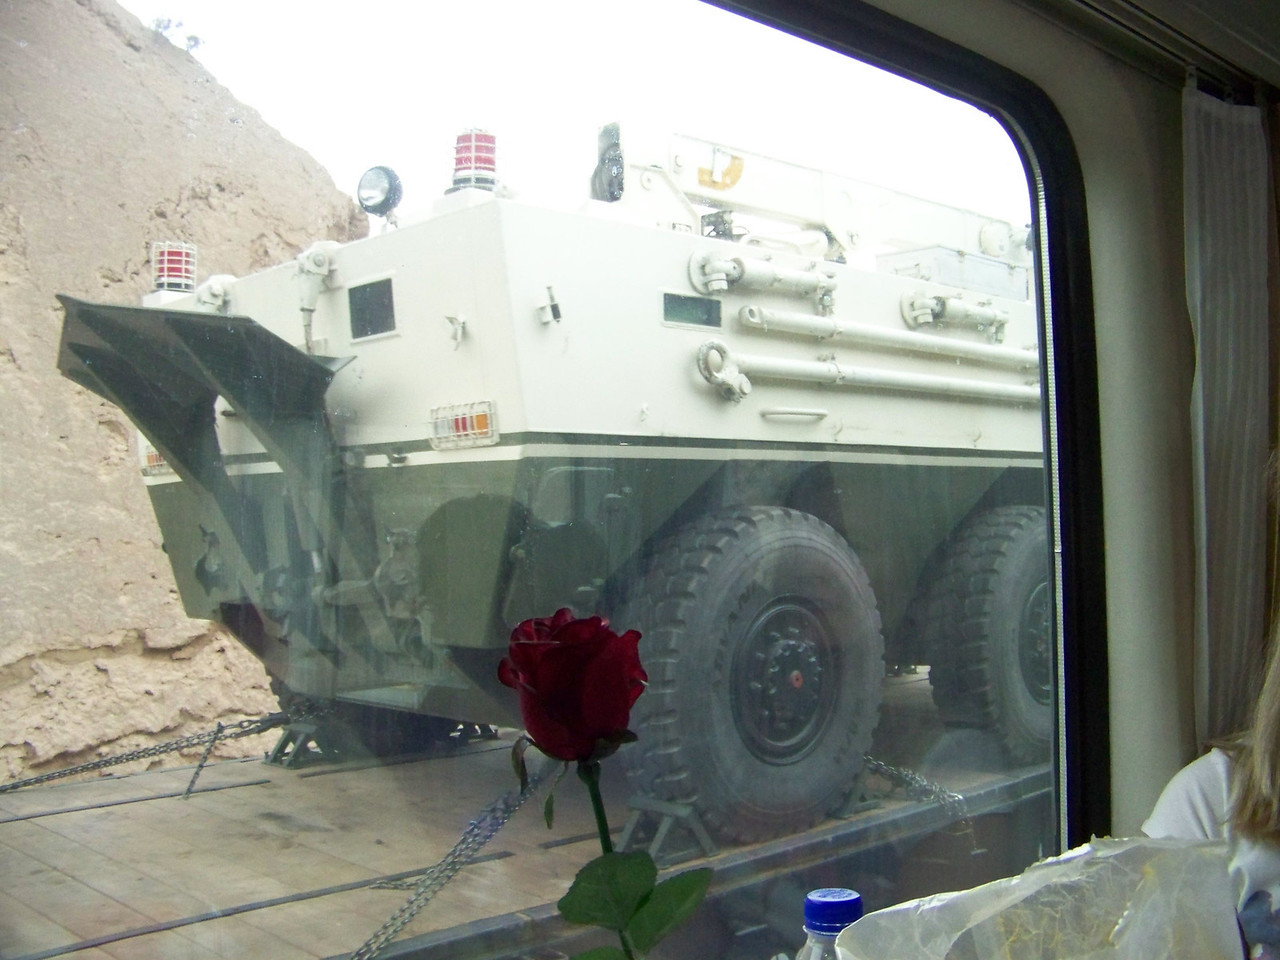 0086 - Military Vehicle on Opposite Train Track on Train Trip Between Beijing and Lhasa.JPG